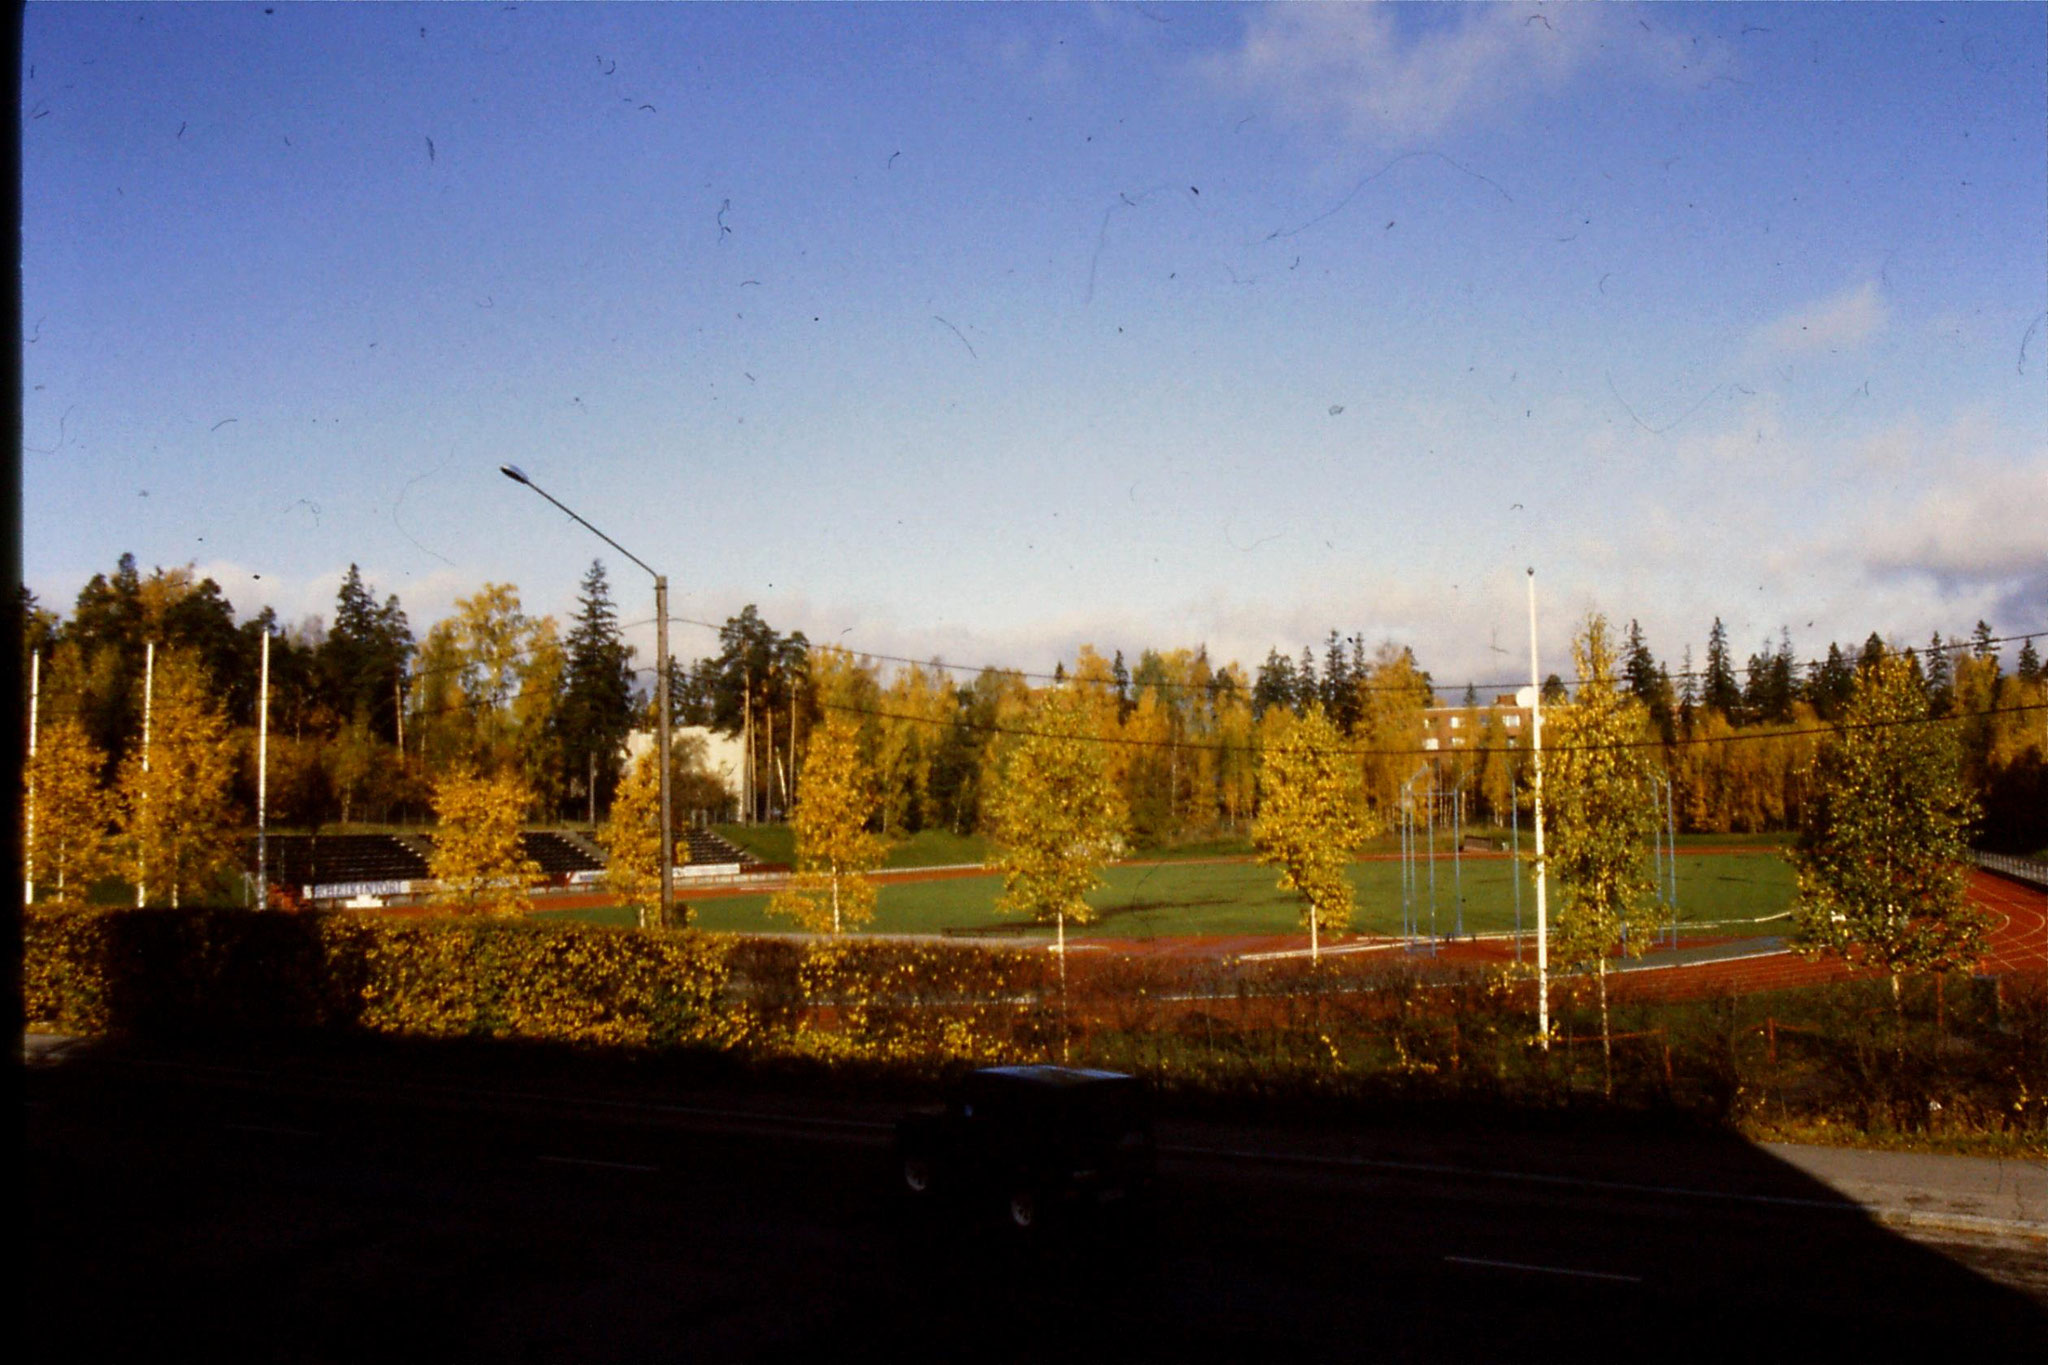 11/10/1988: 9: view from hotel at Otaniemi